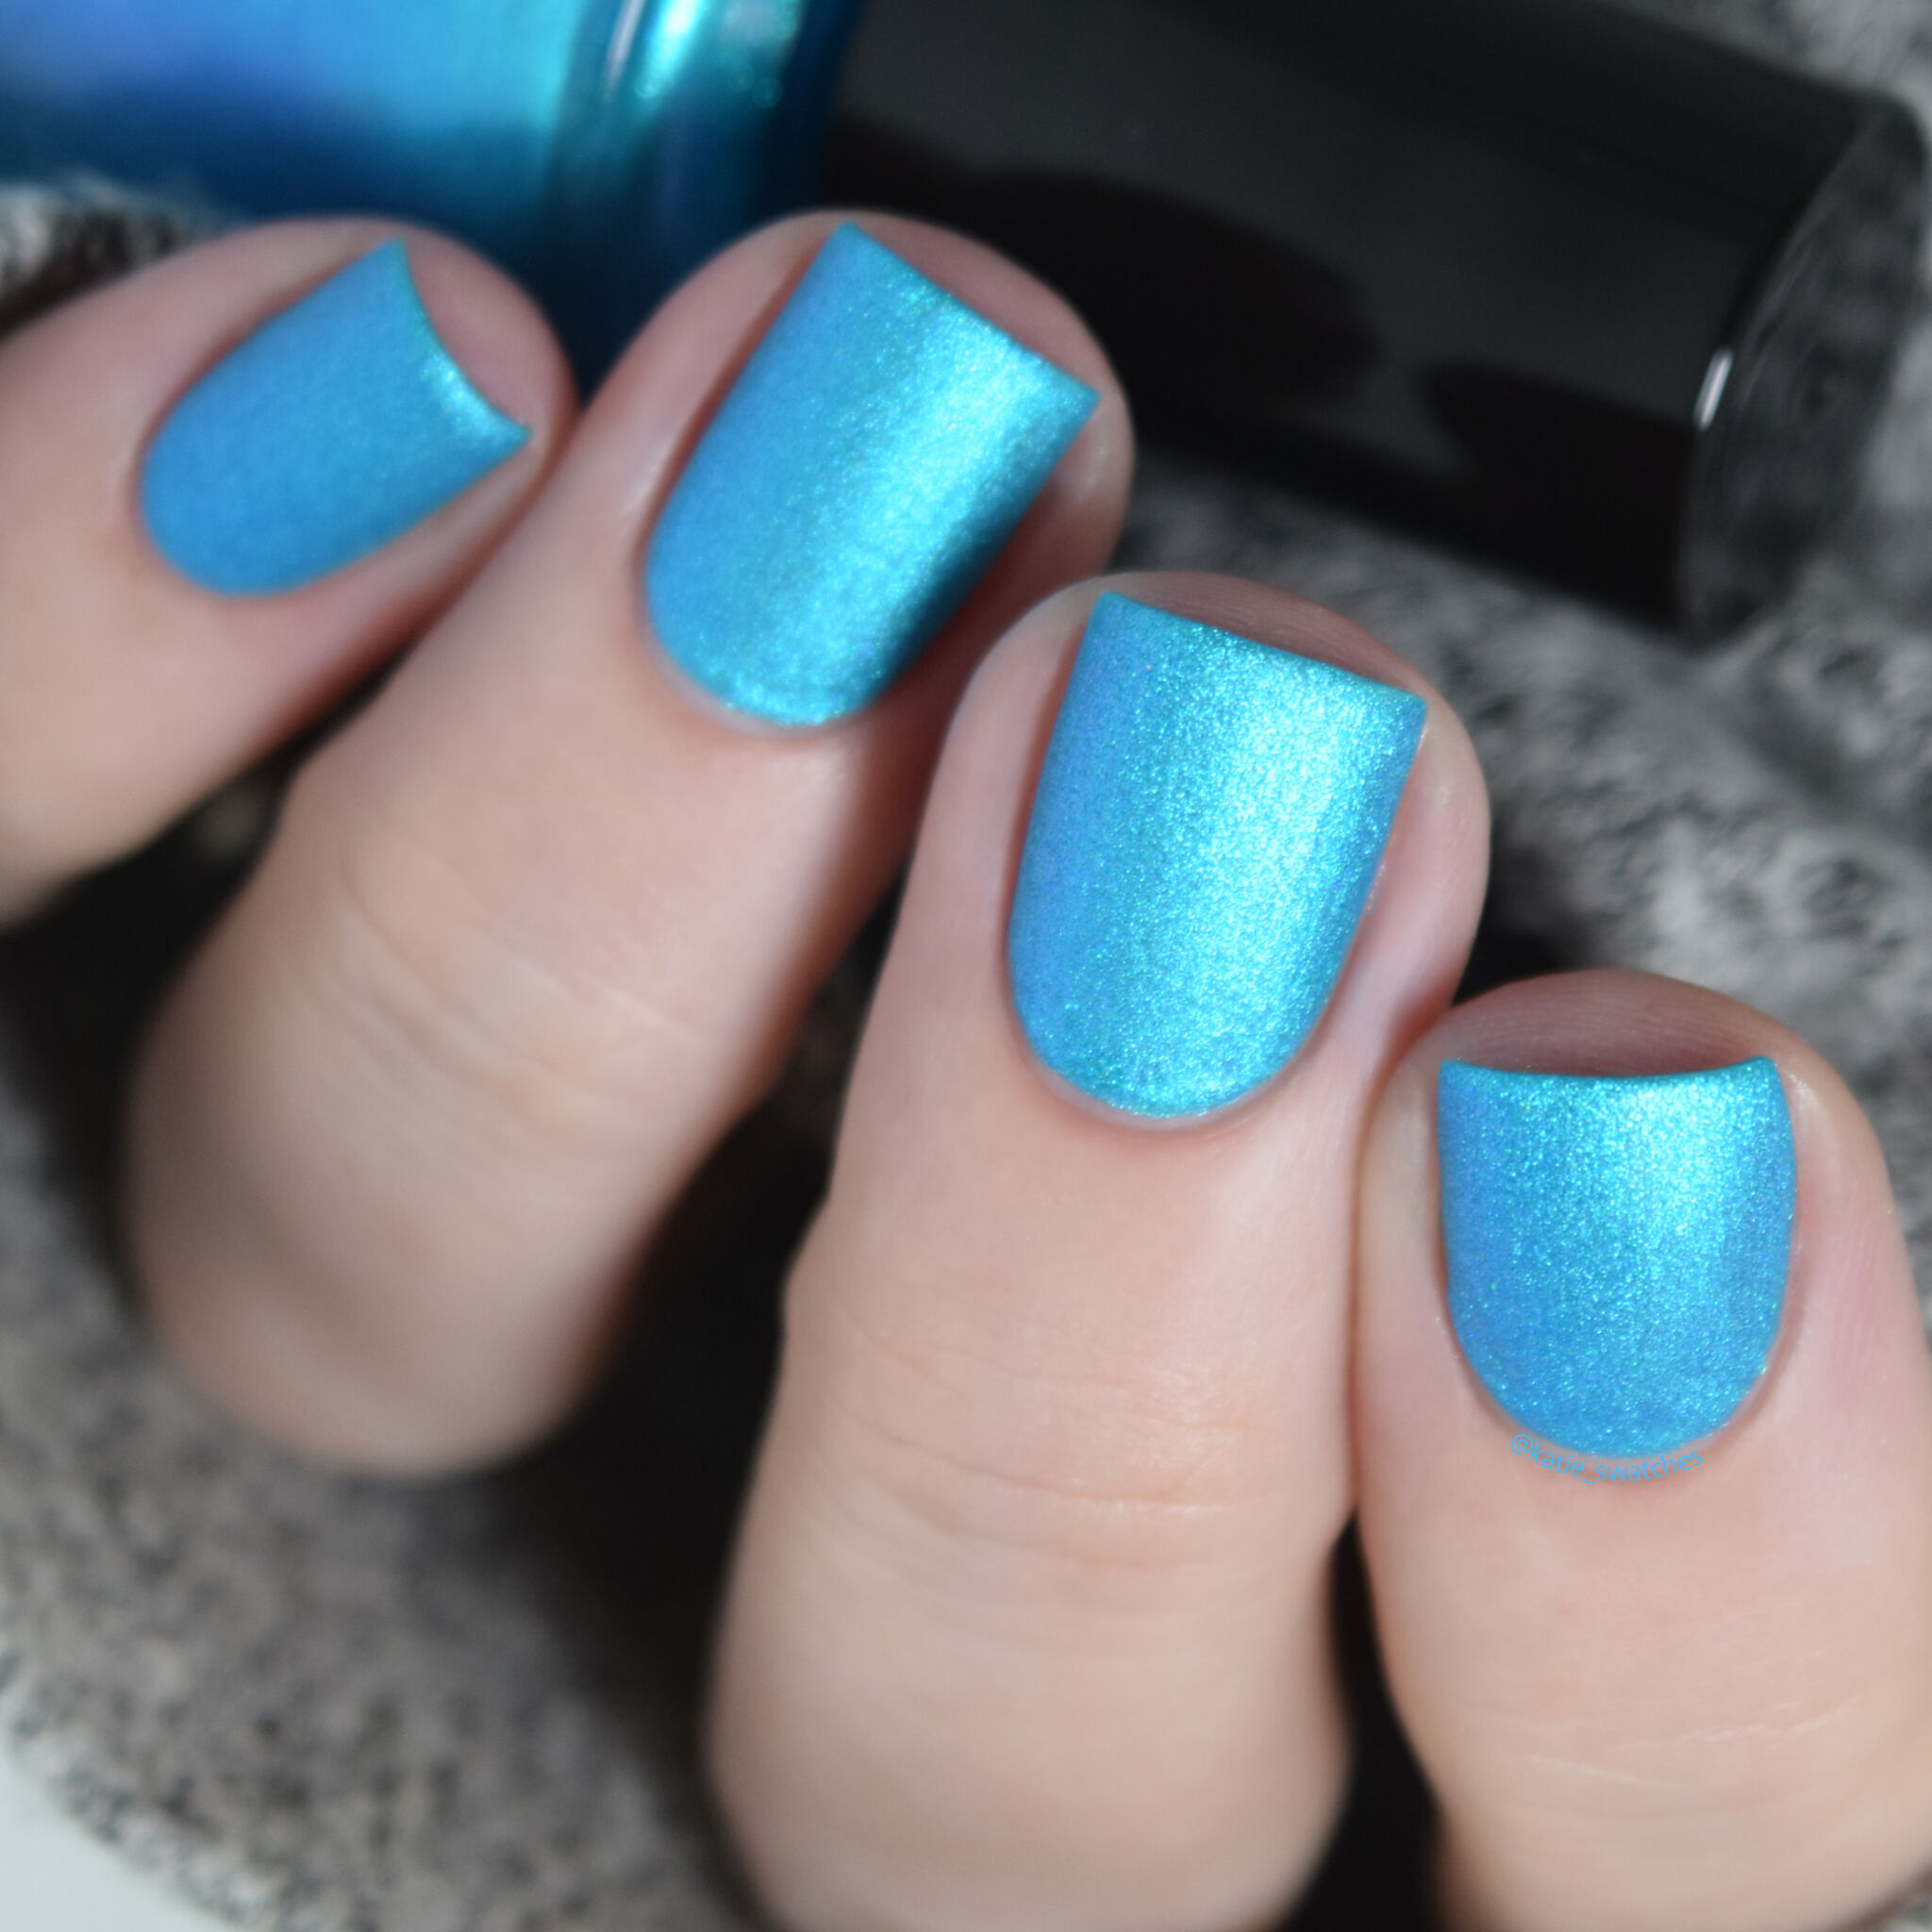 Girly Bits - Lorraine nail polish swatch from the Misheard Lyrics Collection. bright aqua/cyan blue matte nail polish with a blue/purple shimmer